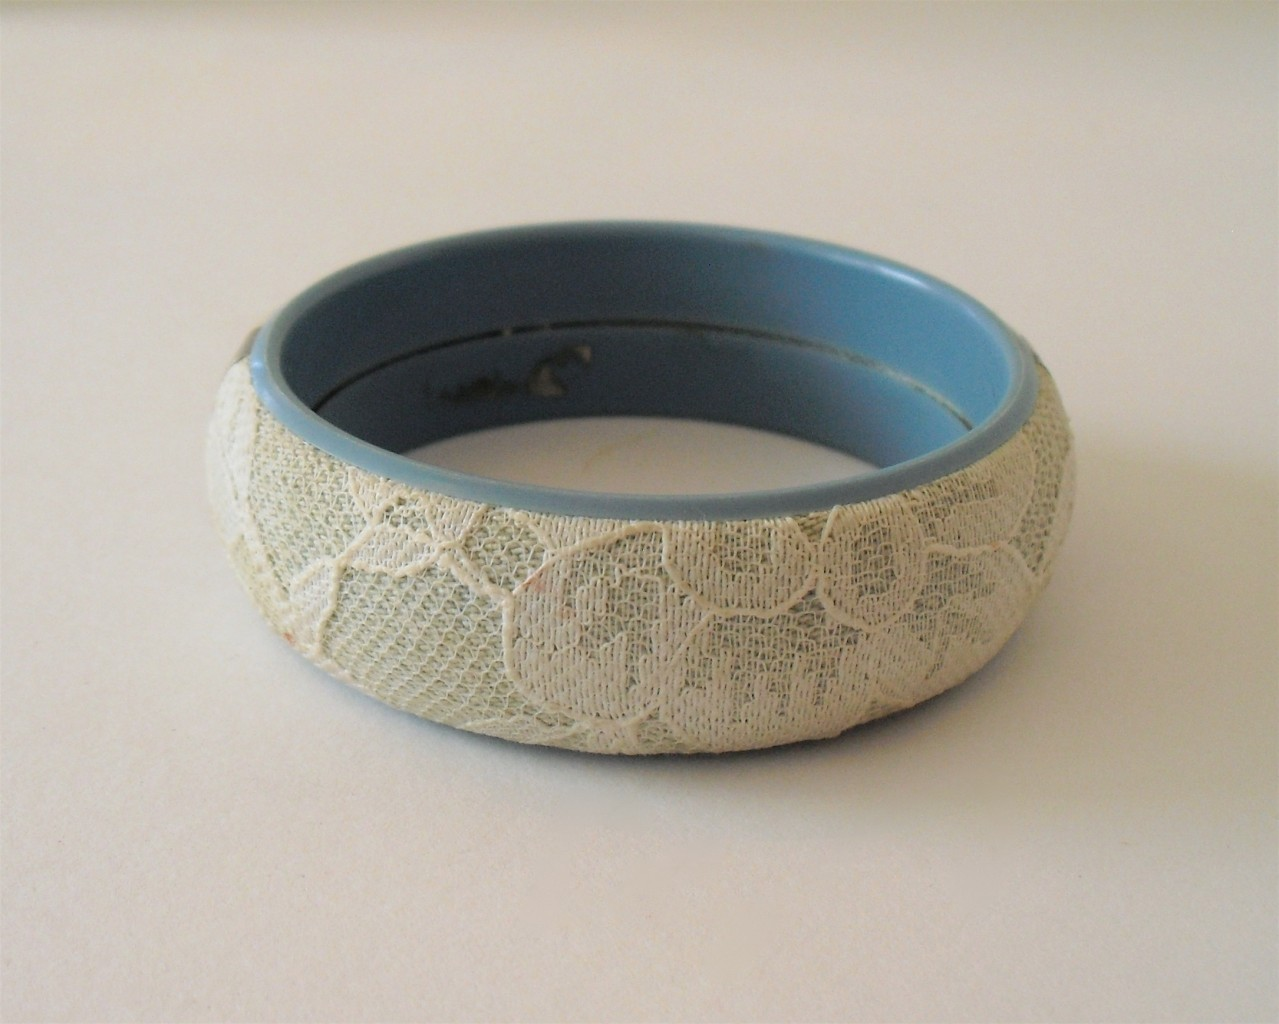 Primary image for Vintage Bangle Bracelet with Lace costume jewelry